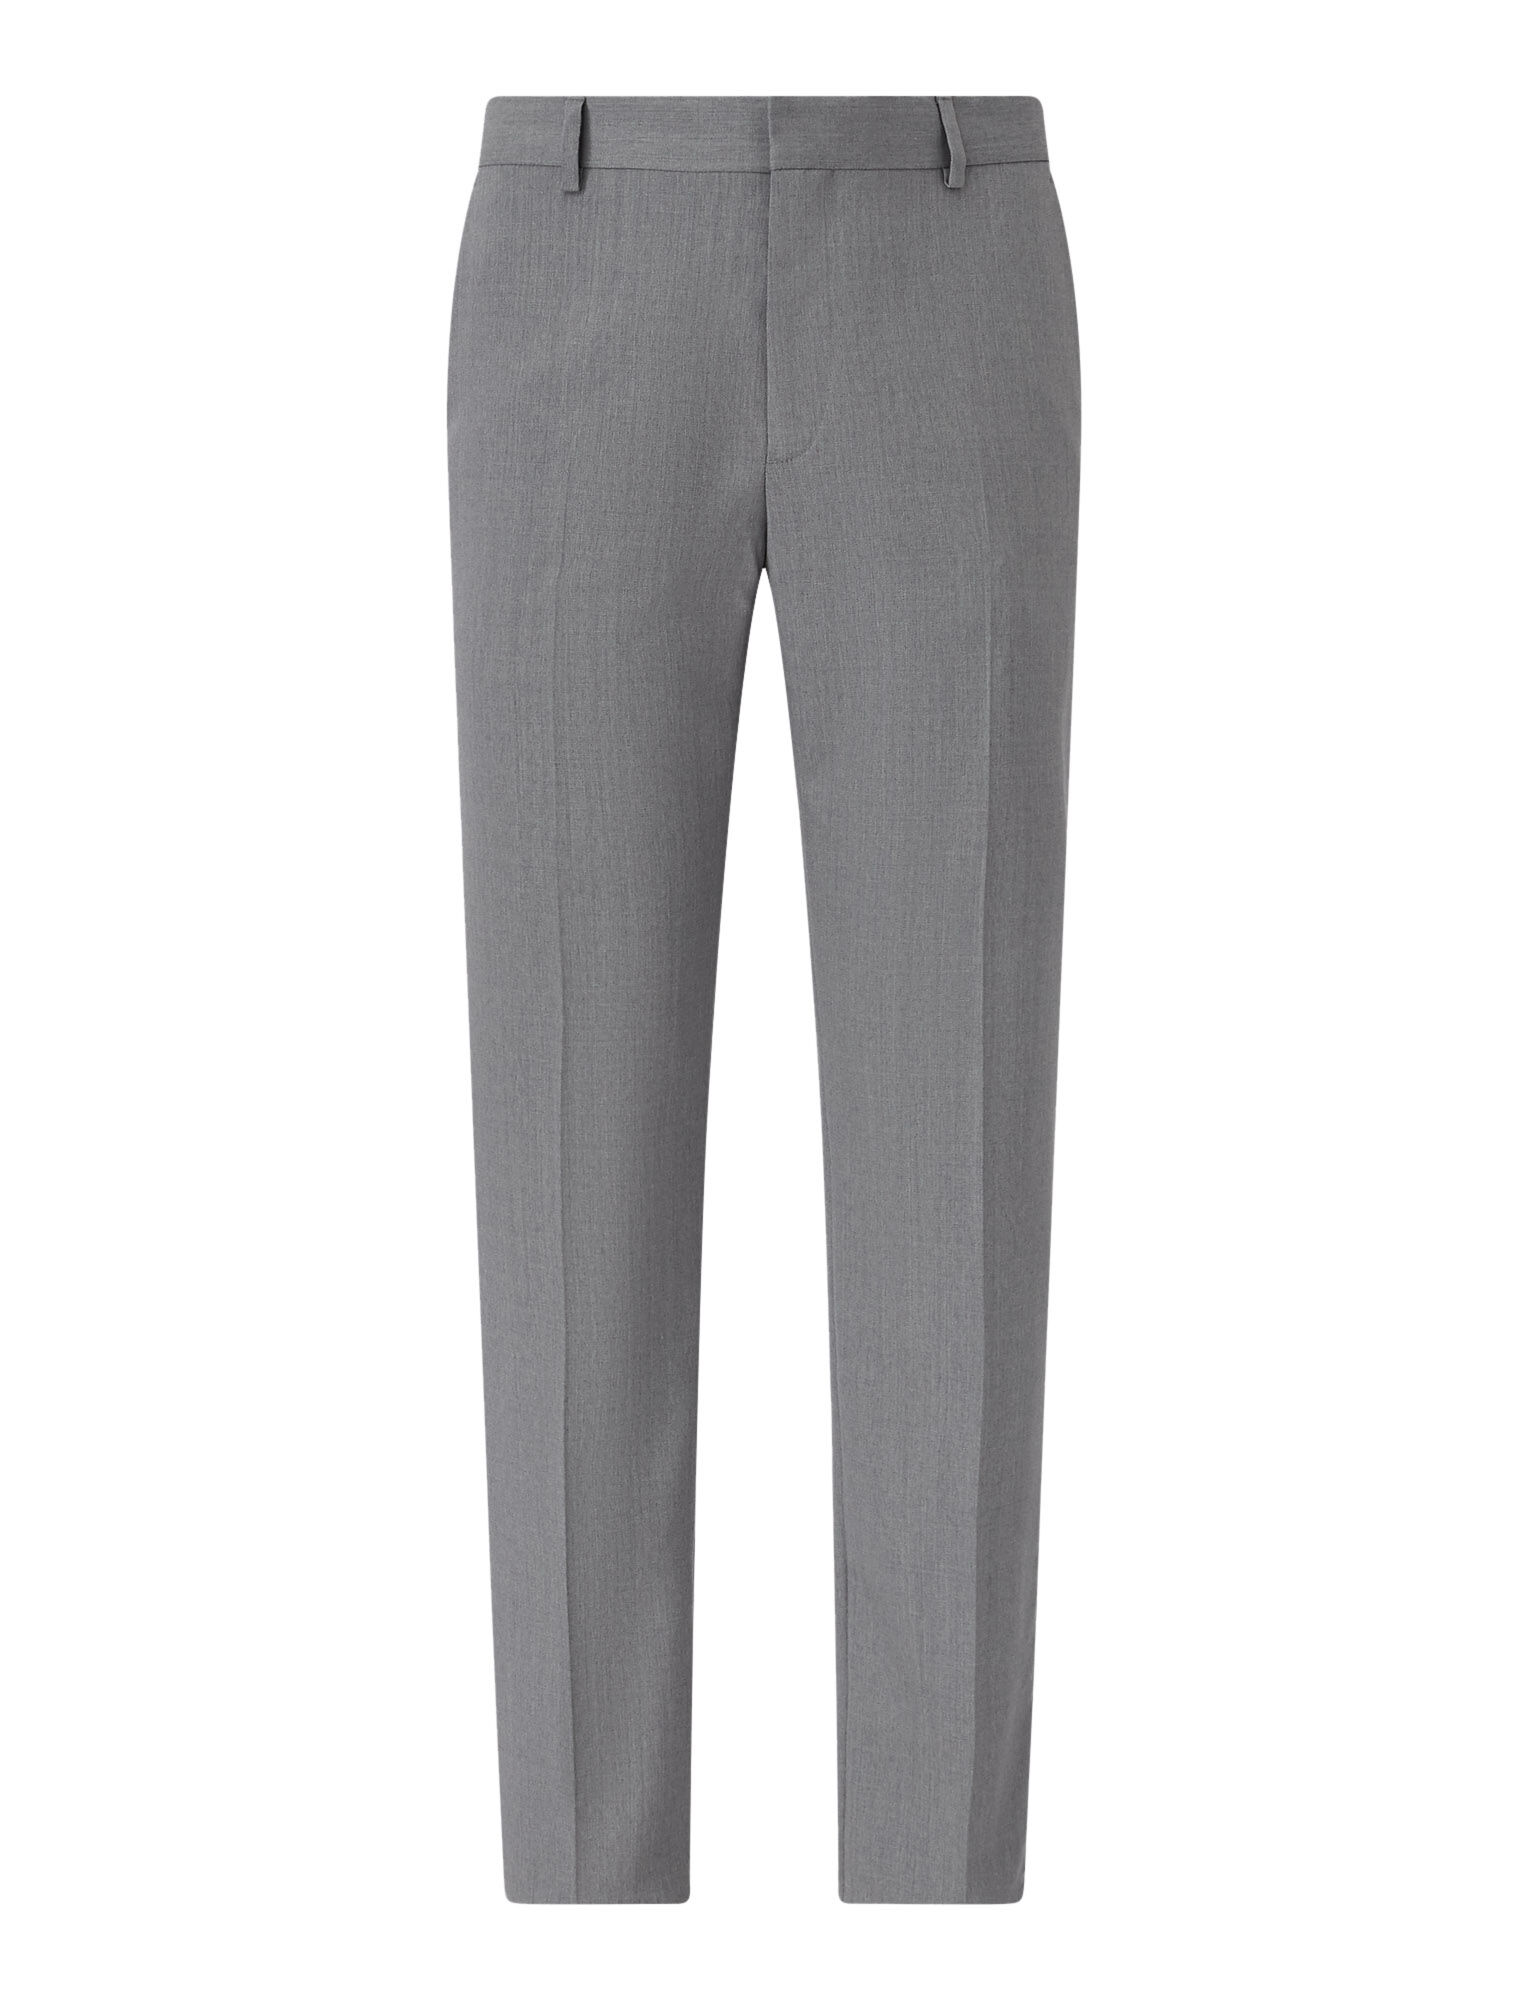 Joseph, Jack Fine Comfort Wool Trousers, in GREY CHINE